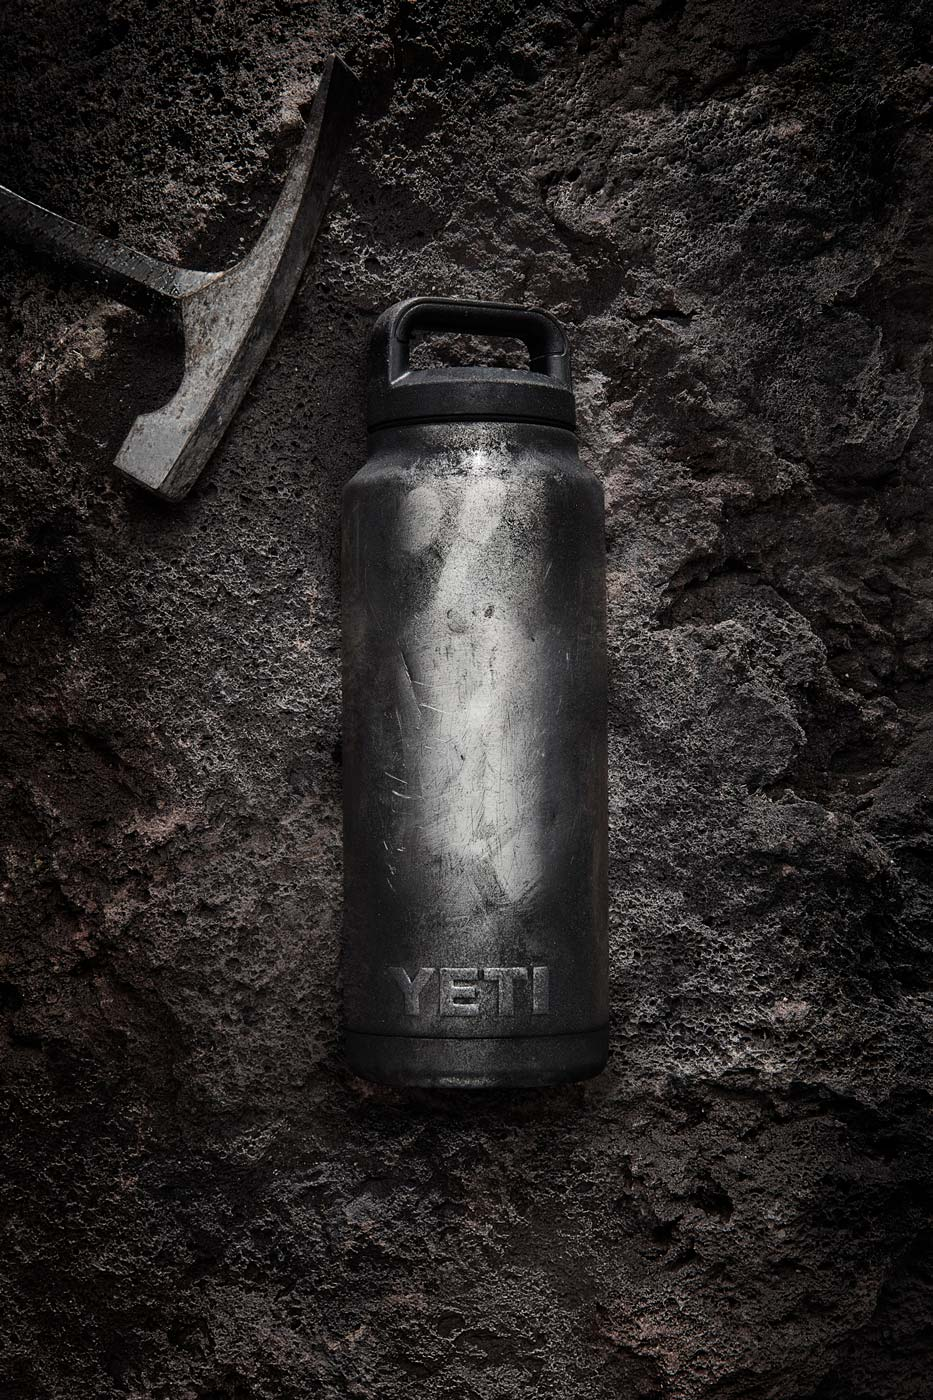 YETI RAMBLER BOTTLE LAUNCH